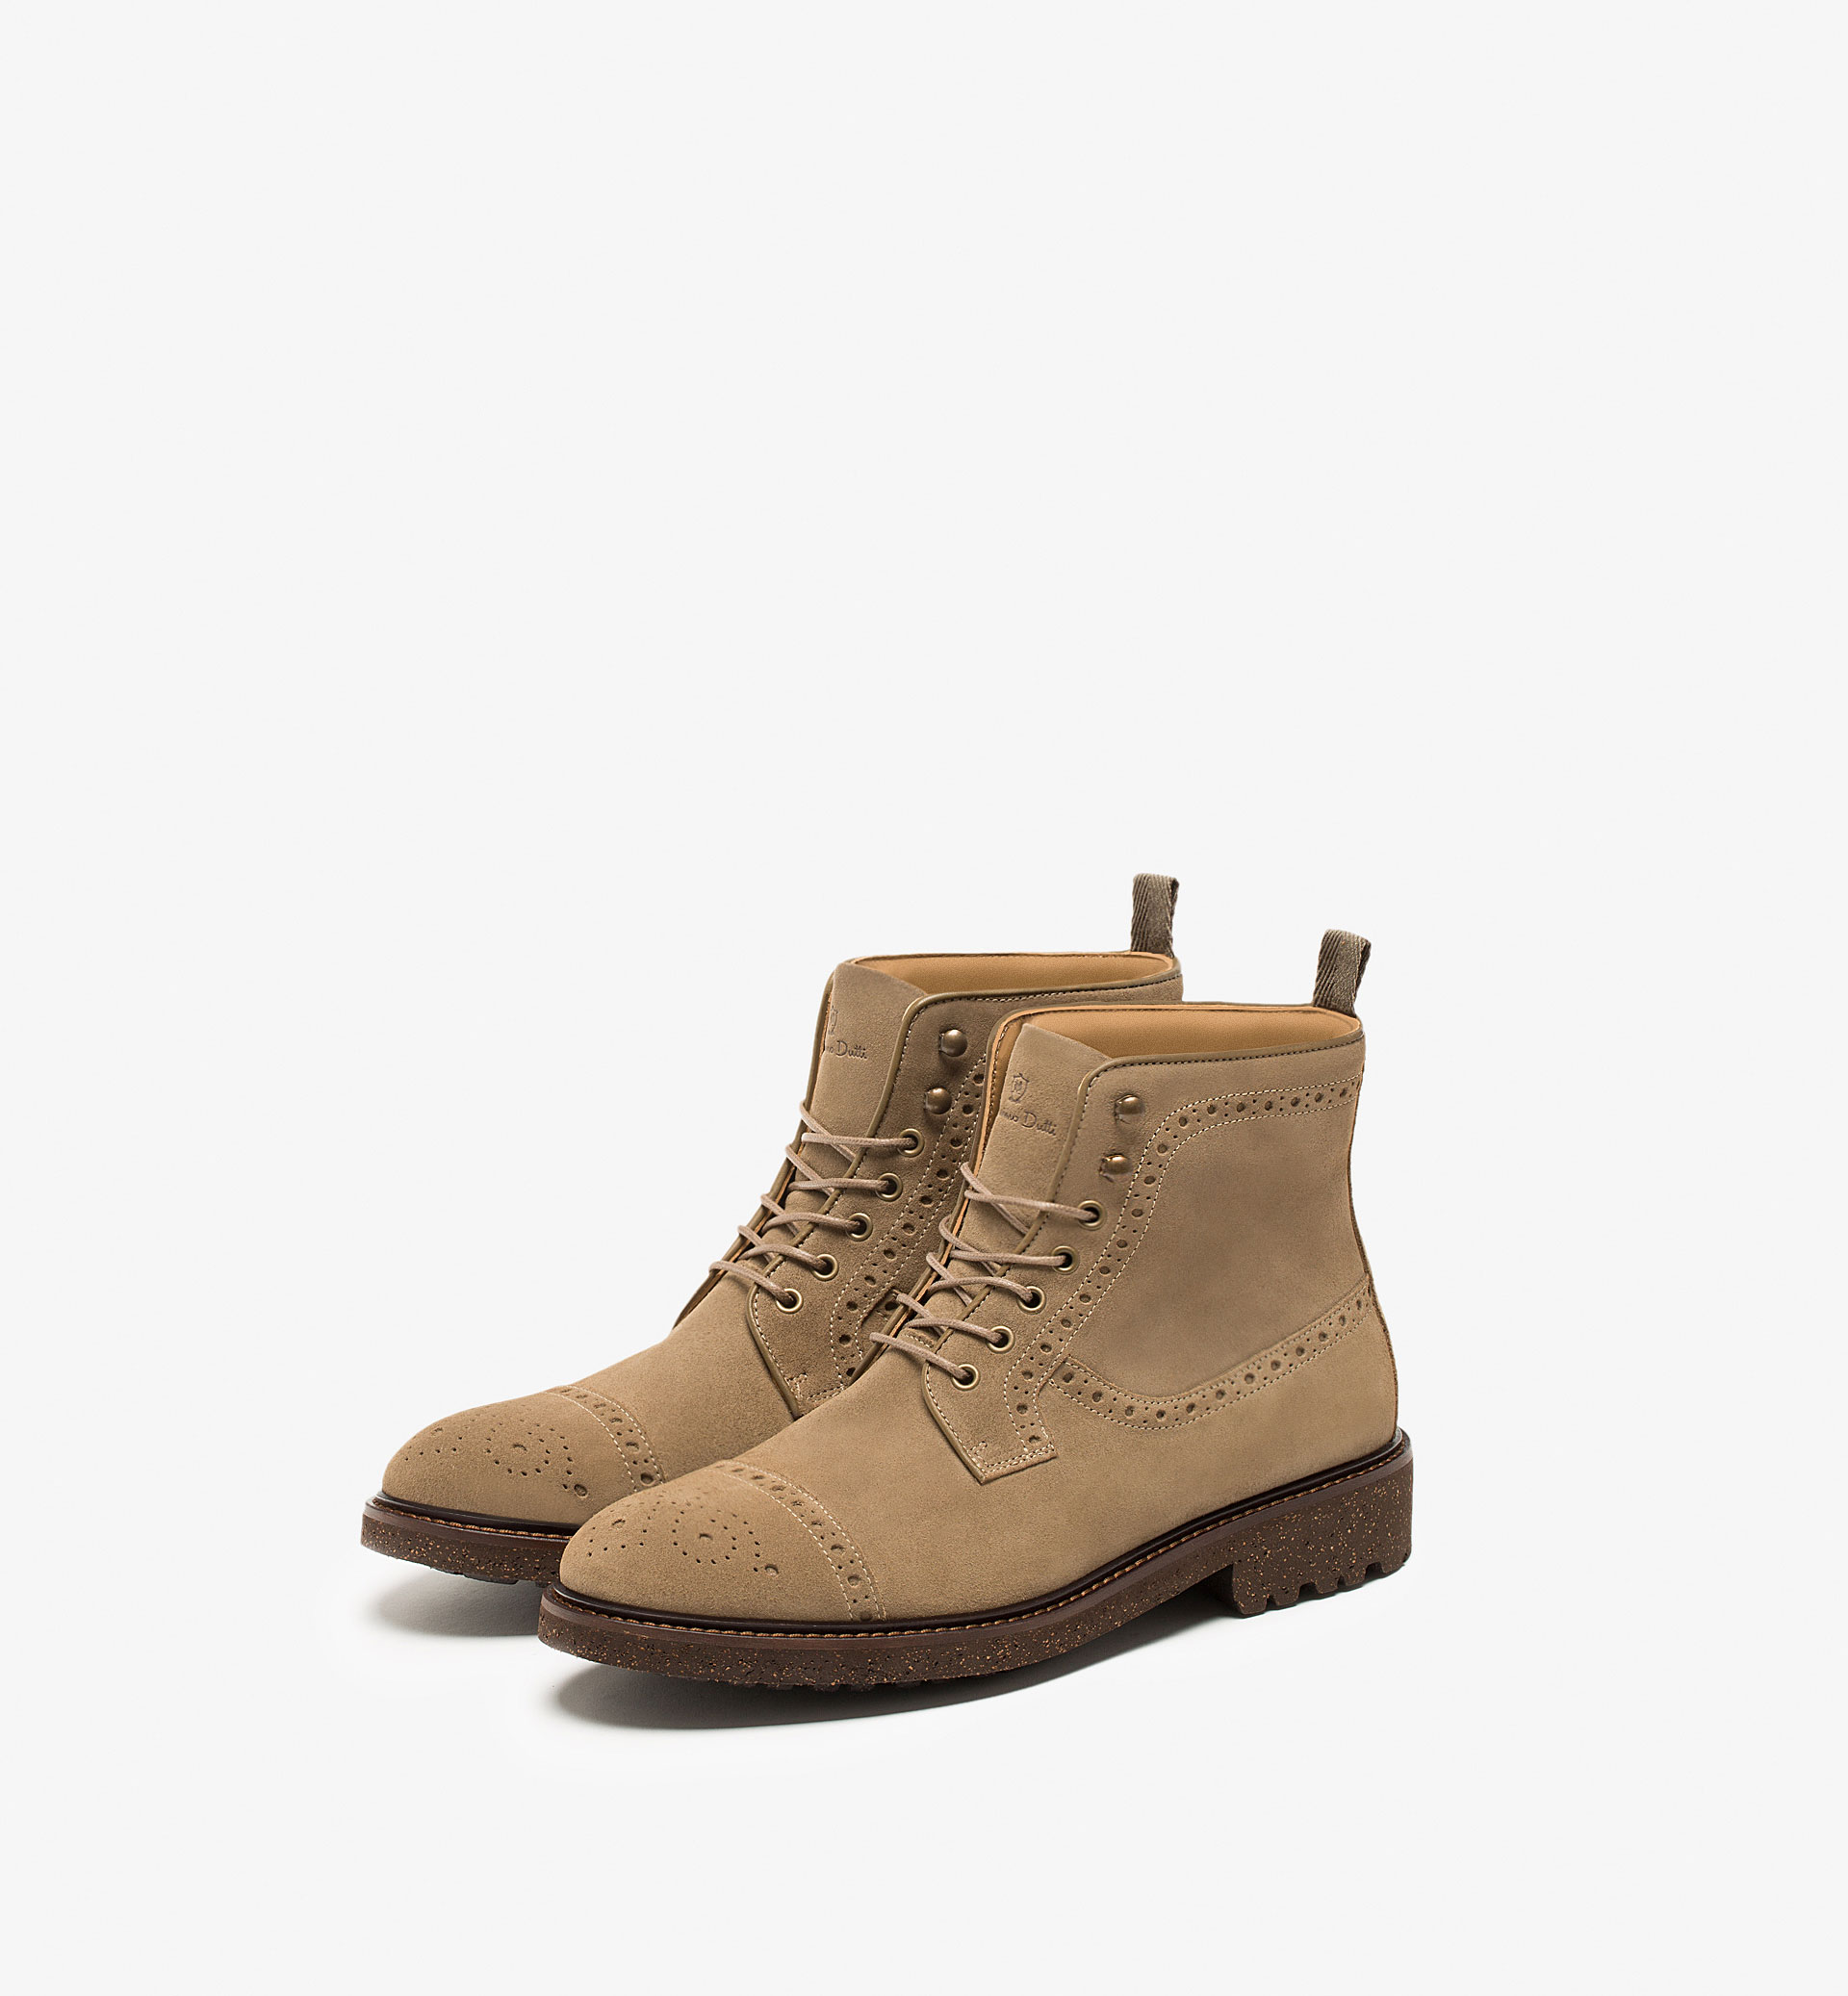 BROGUED SPLIT SUEDE LEATHER ANKLE BOOTS